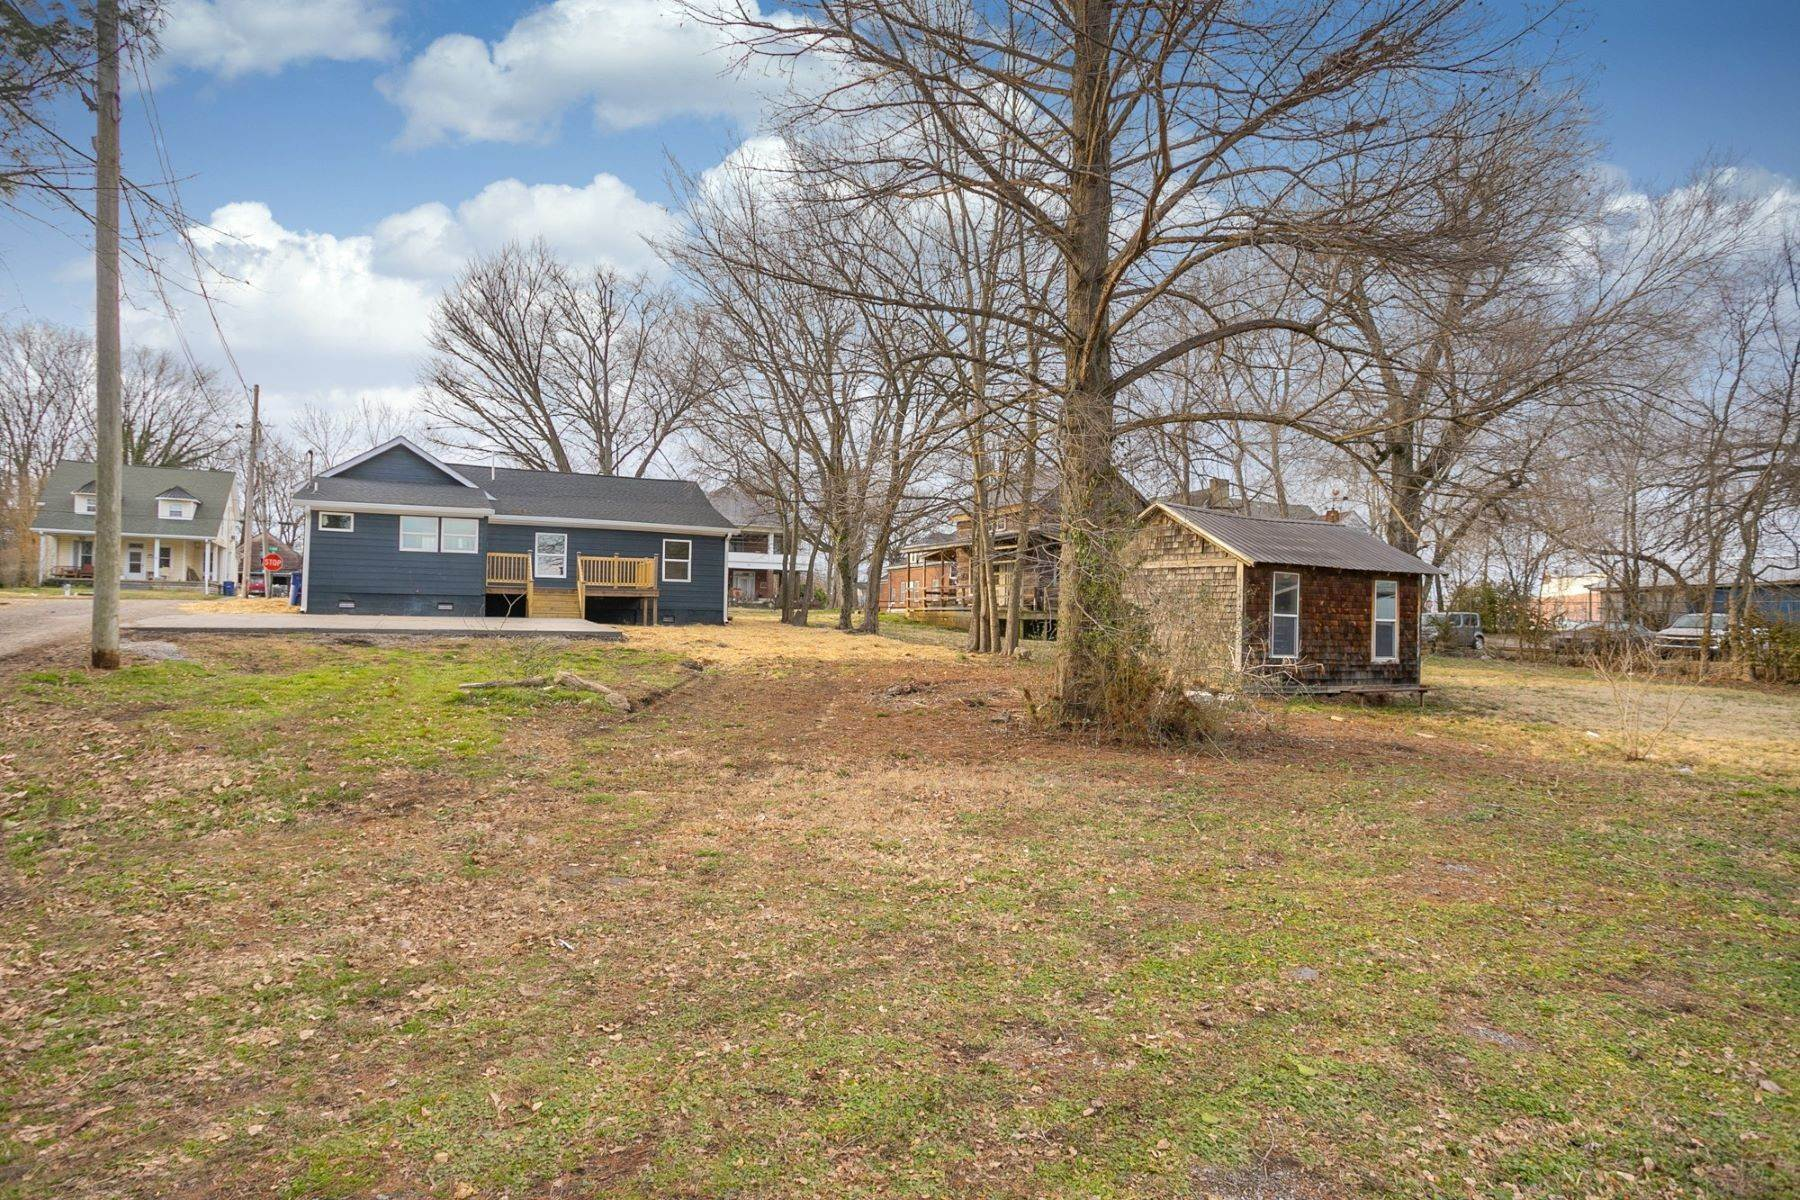 20. Single Family Homes for Sale at 207 South Main St, Mount Pleasant, Tn, 38474 207 South Main St Mount Pleasant, Tennessee 38474 United States